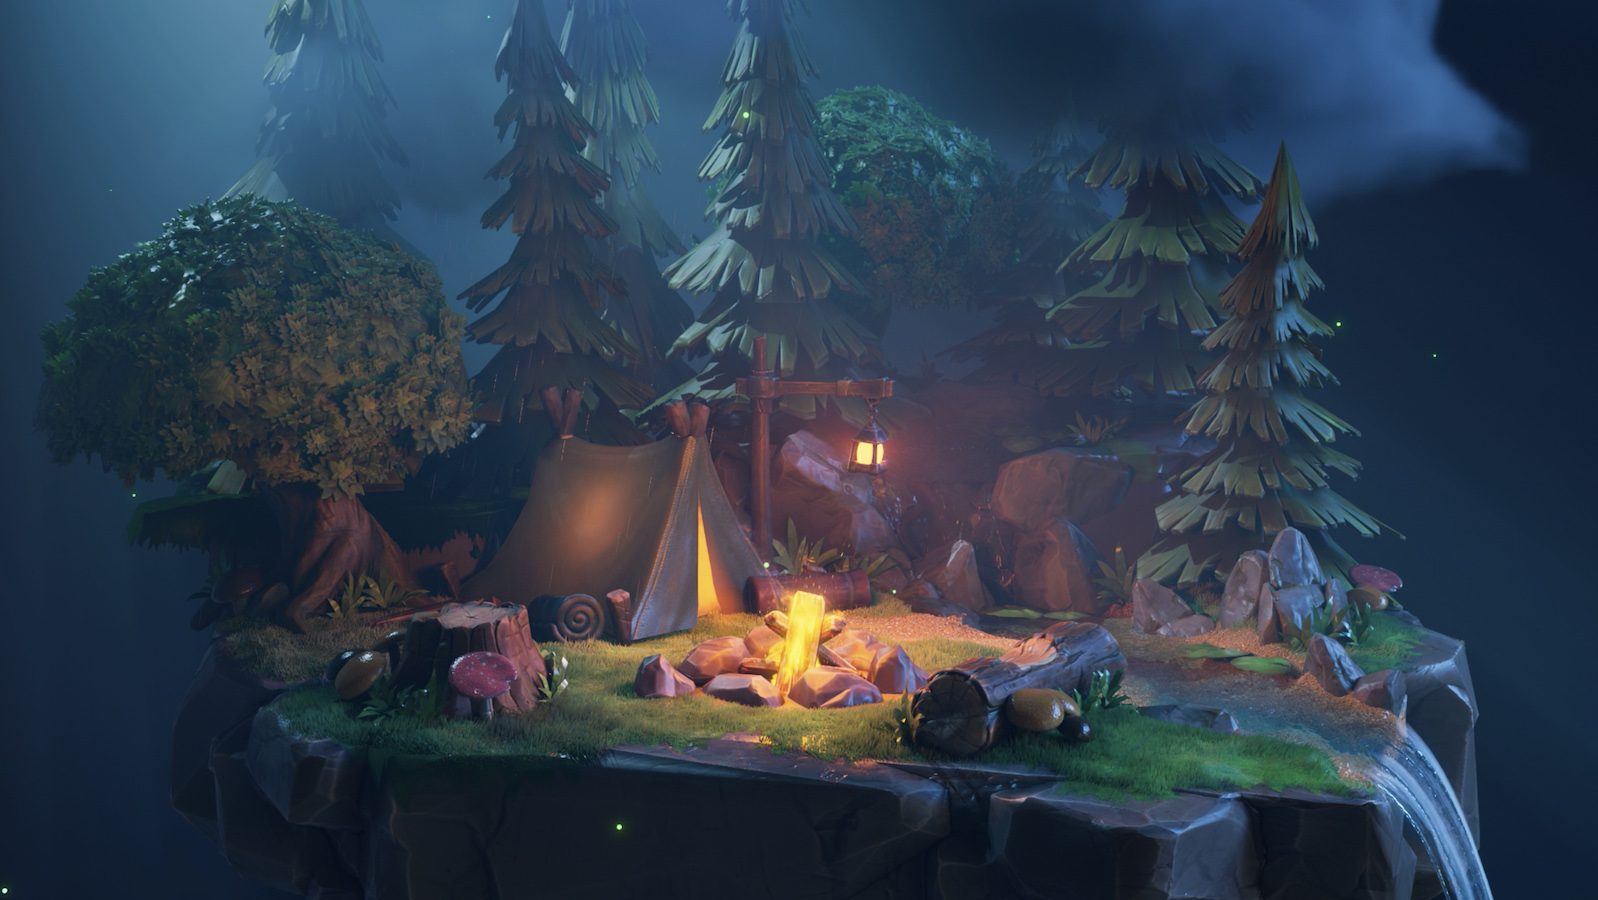 An image from the Loona app of a campfire and tent in a forest